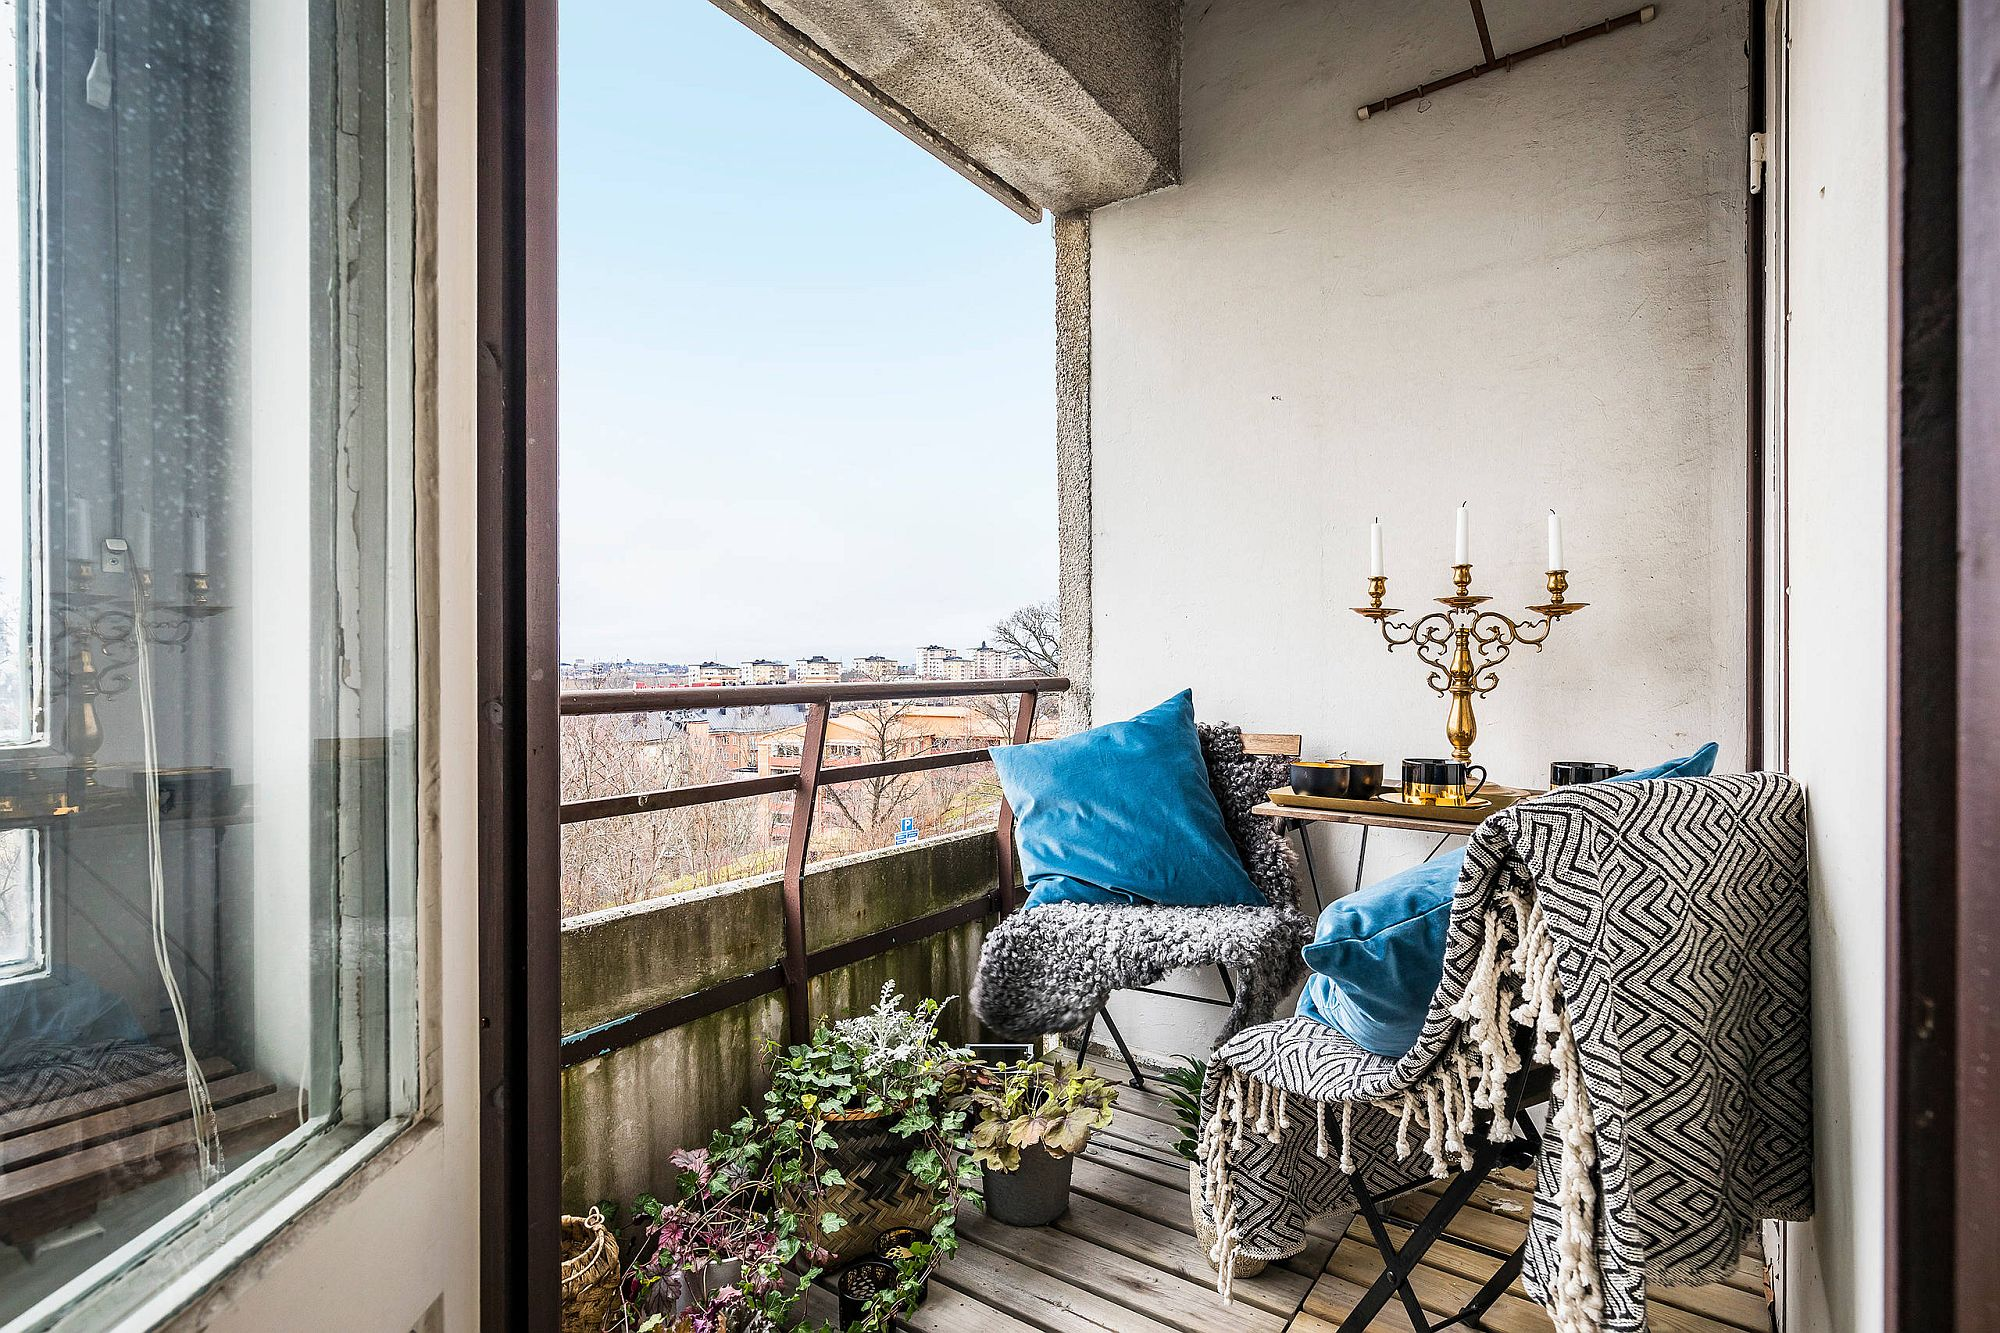 Trendy-eclectic-decorating-style-for-the-small-balcony